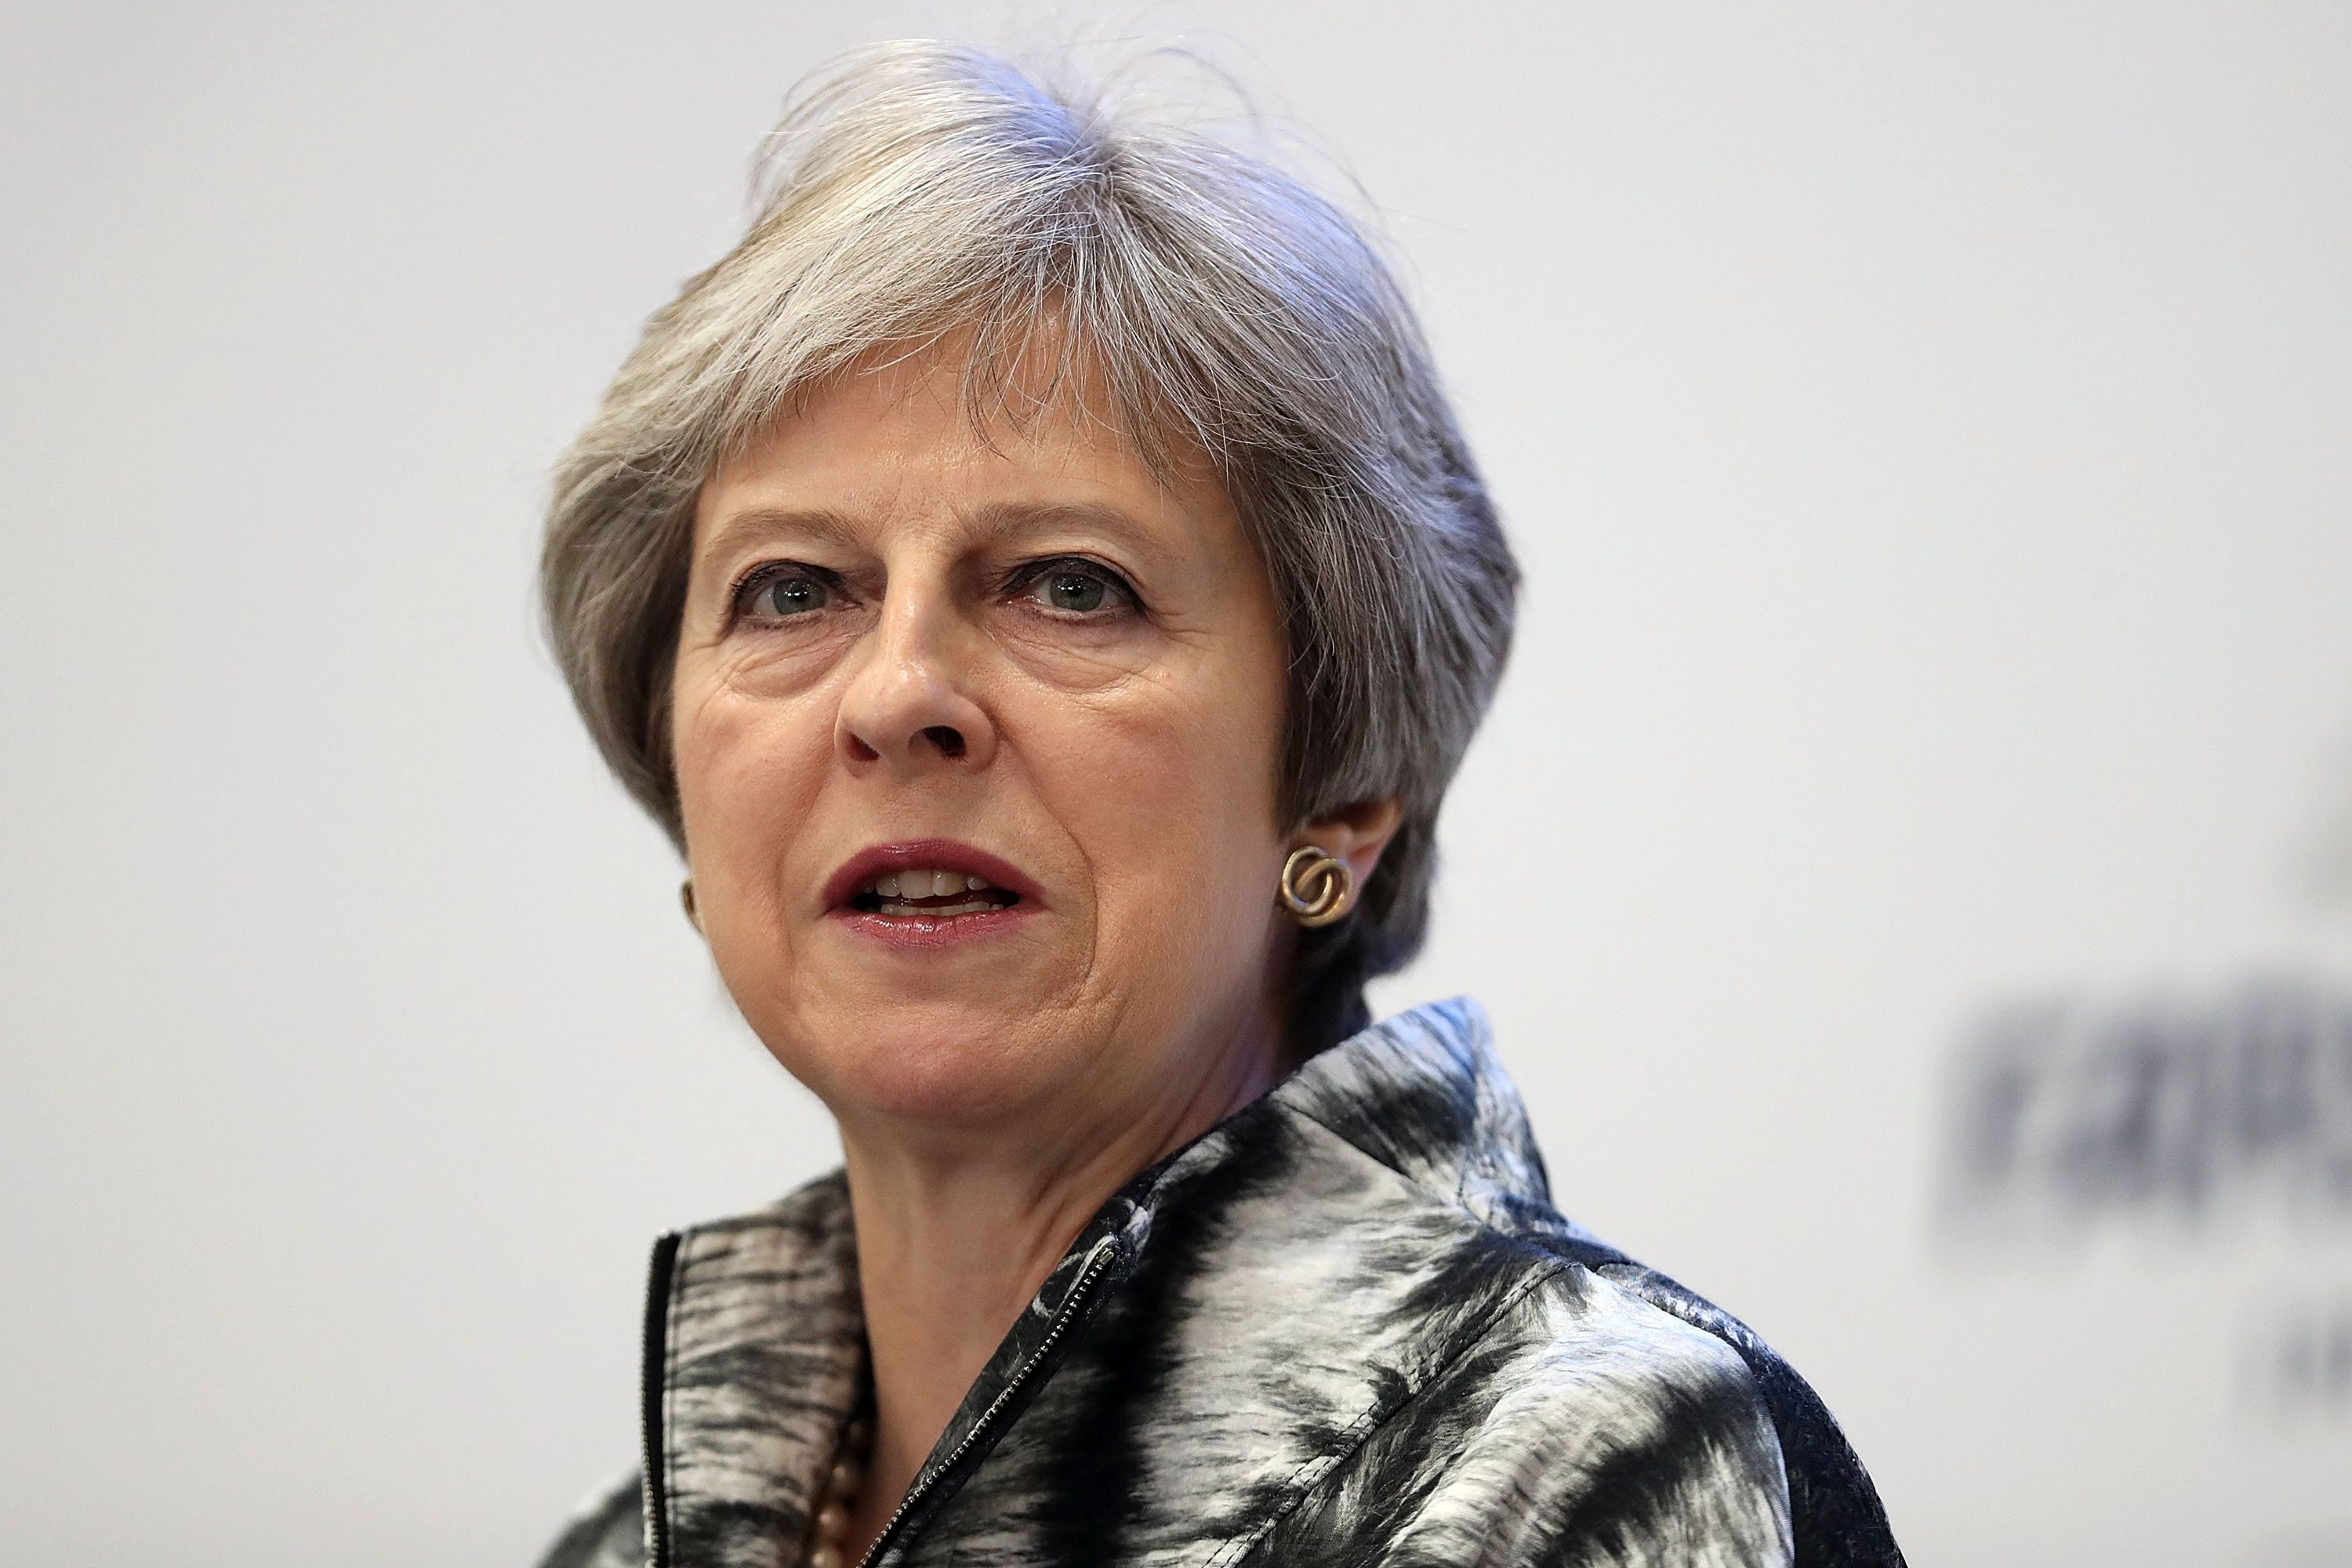 May says her Chequers plan on #Brexit is not dead